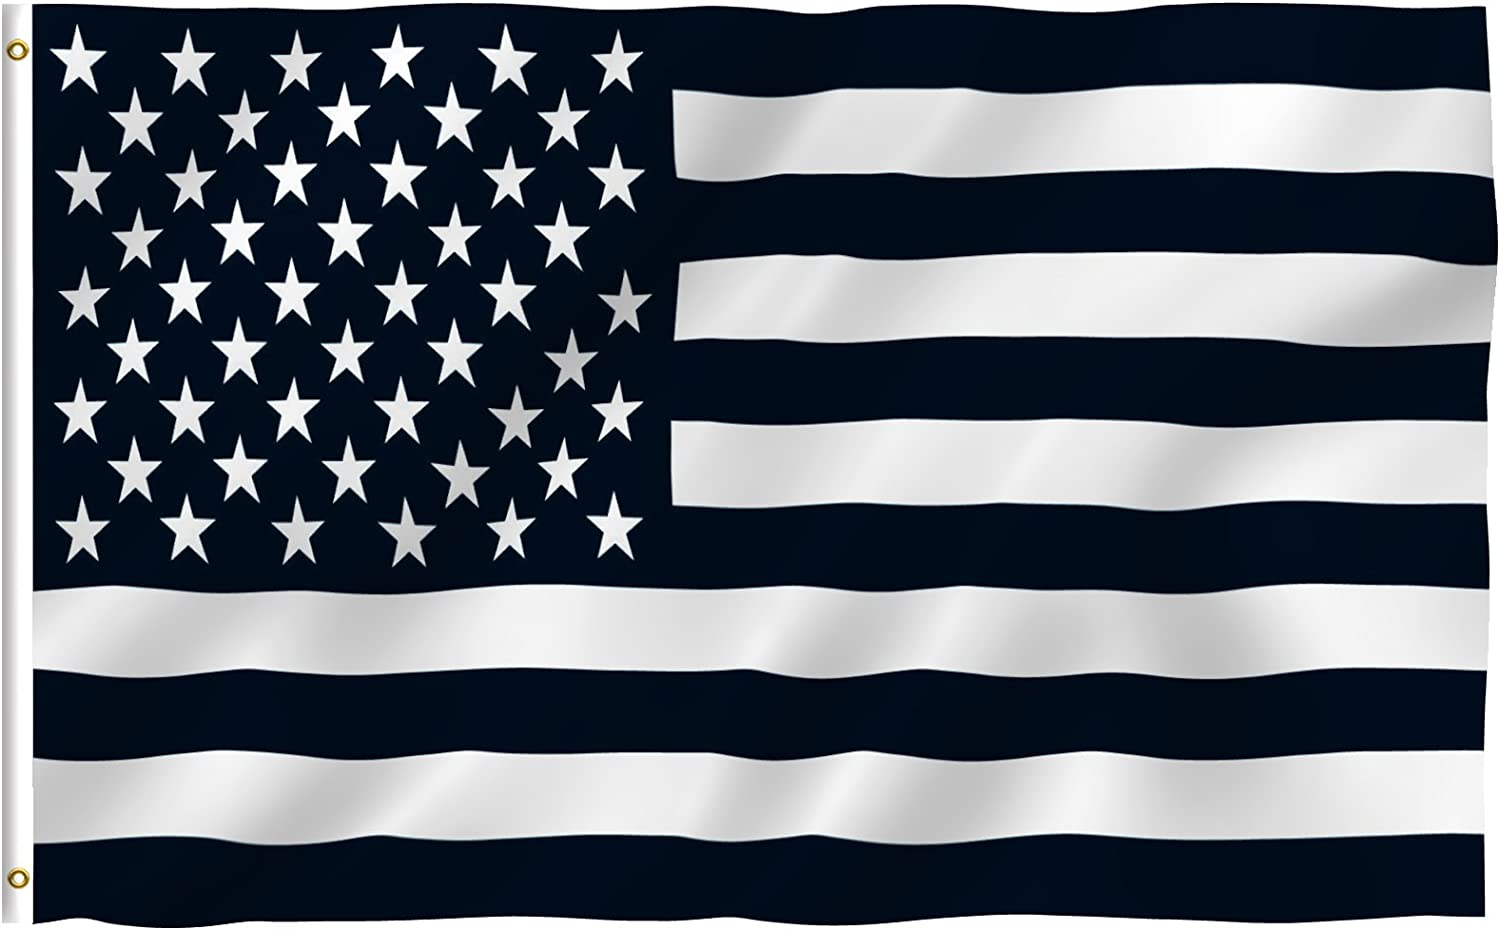 3'x5' Feet Black and White American Protest Flag Polyester